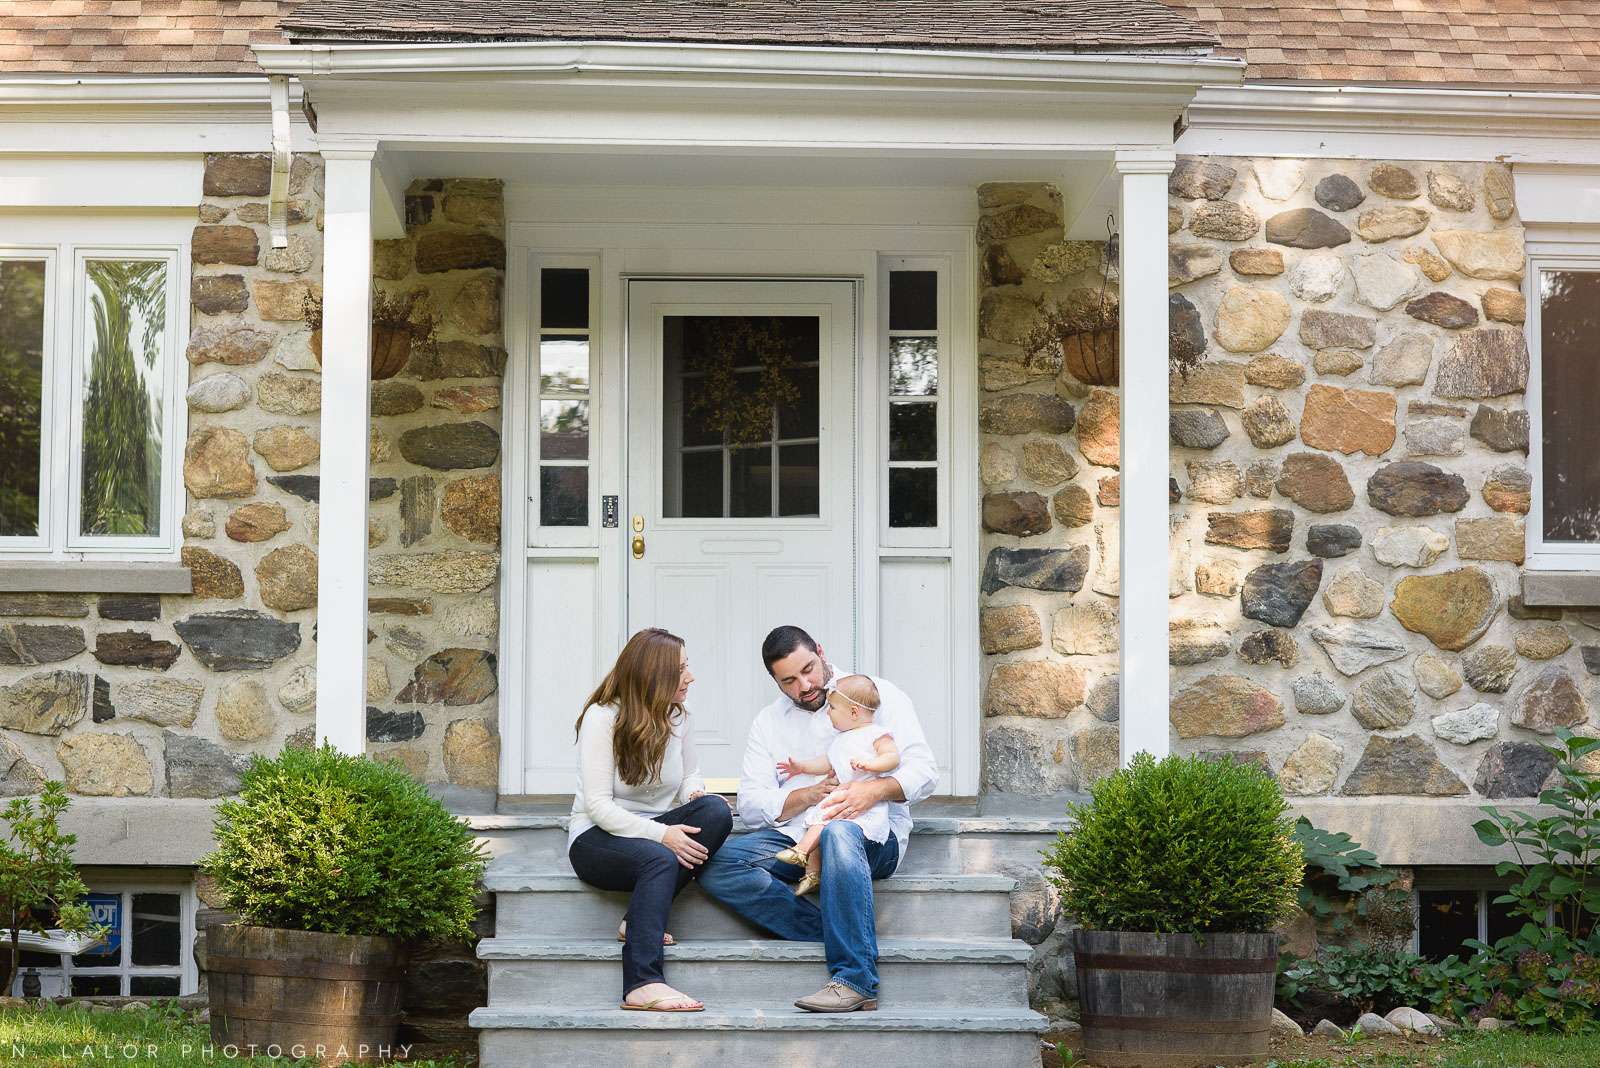 Lifestyle family portrait in front of their lovely home in Katonah, NY. Photo by N. Lalor Photography.